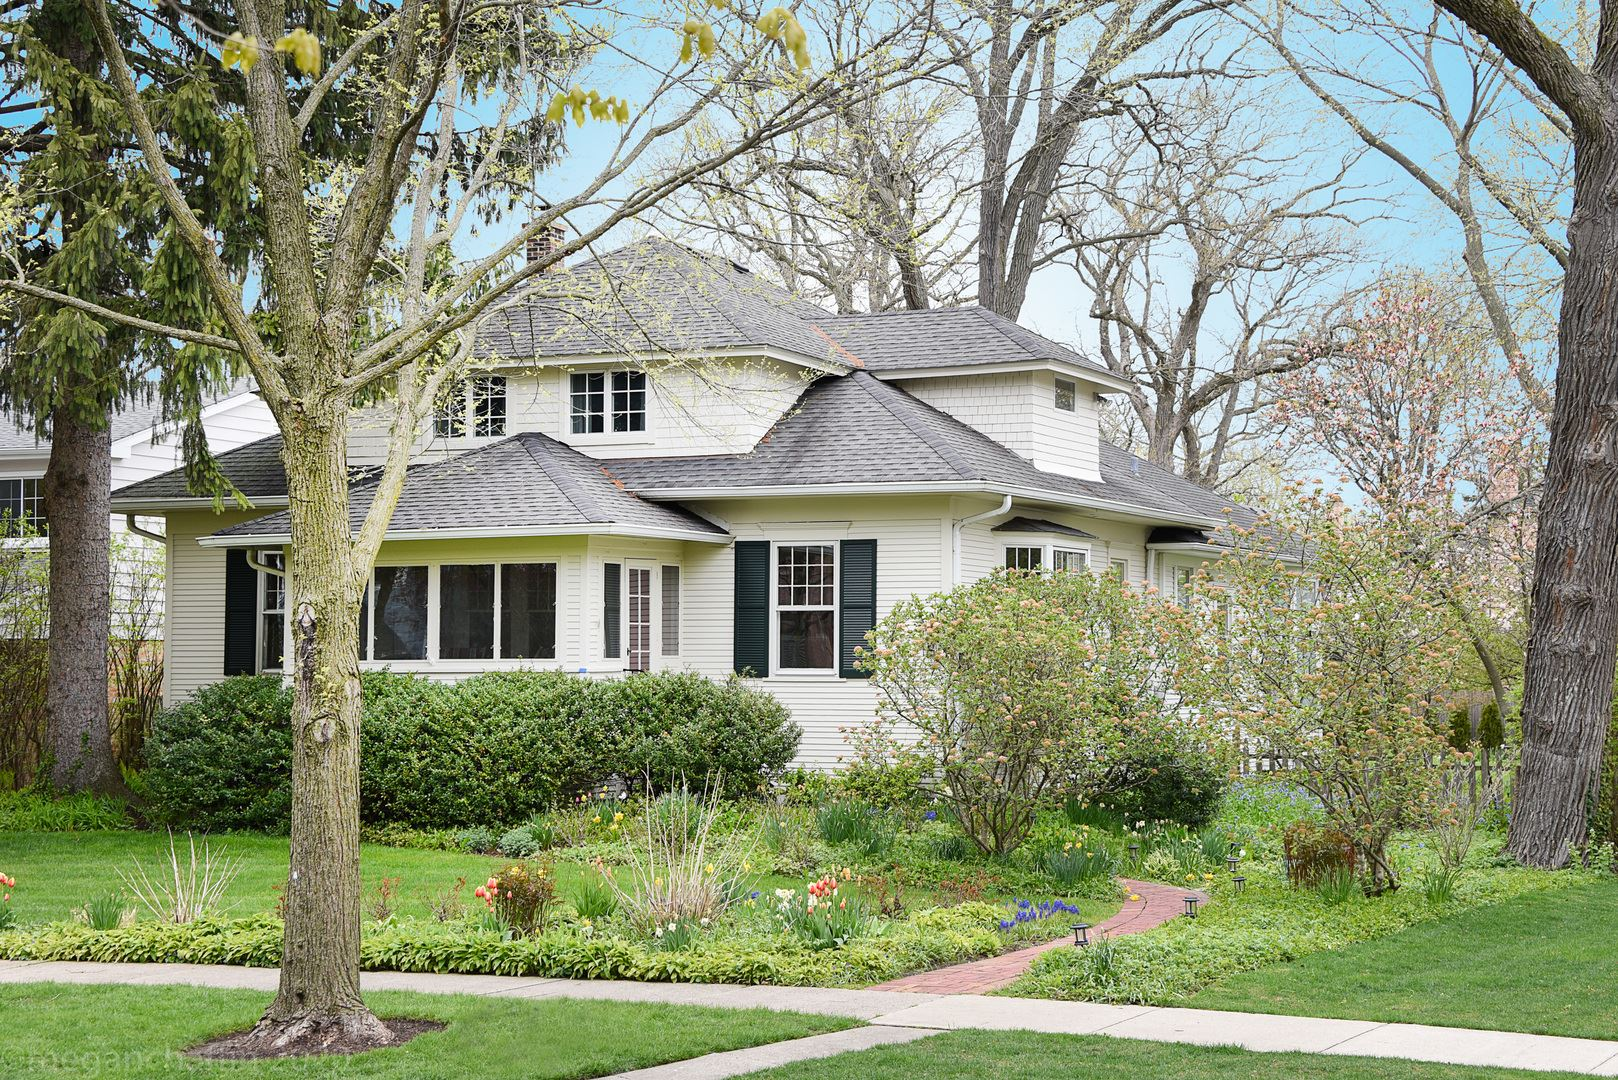 1097 Oak Street, Winnetka, IL 60093 - #: 10708275